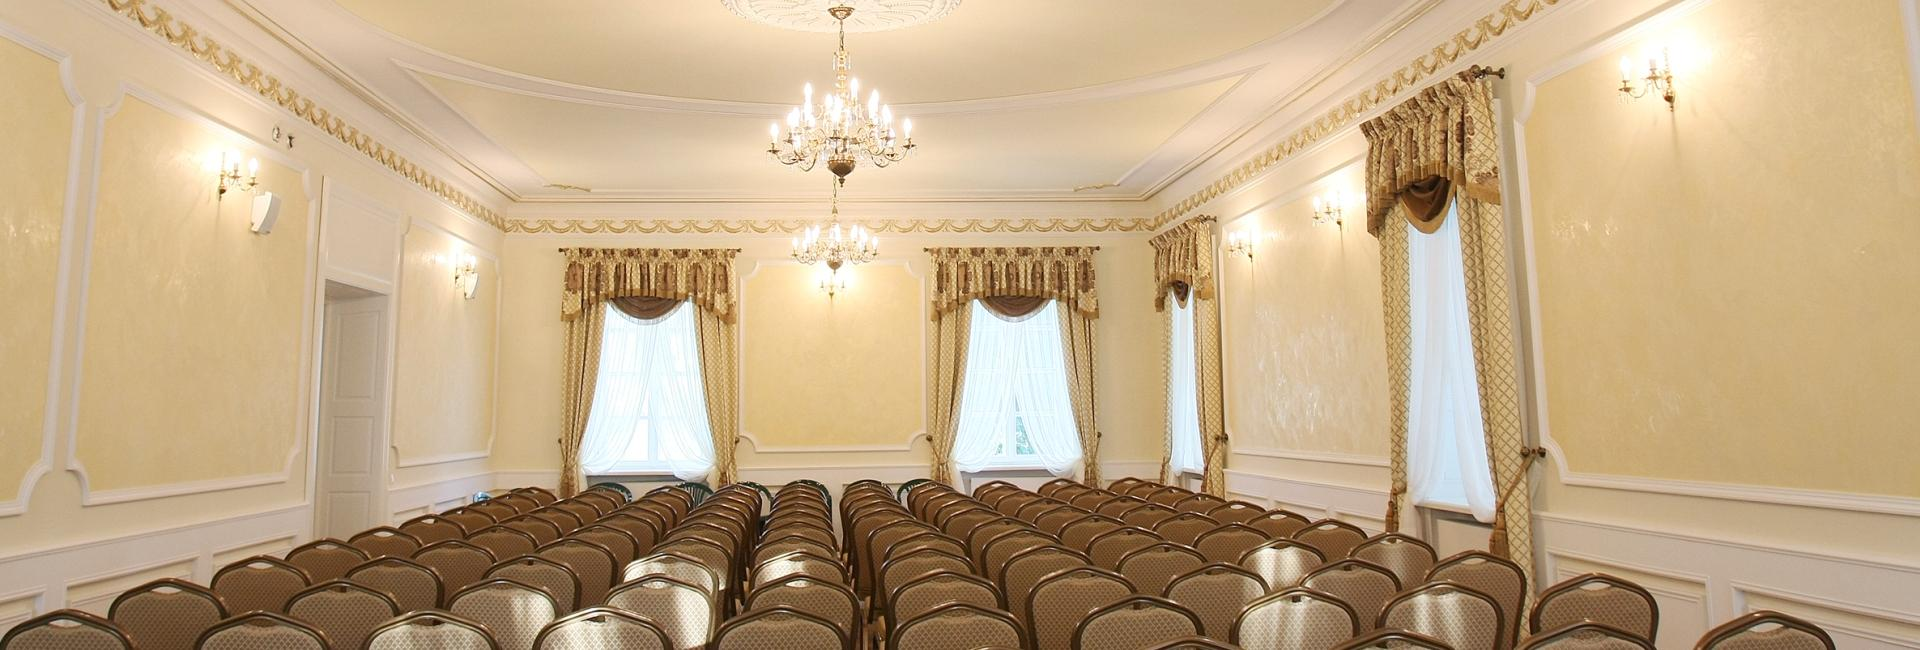 Conference room at Lochow Palace and Grange, Masovian district